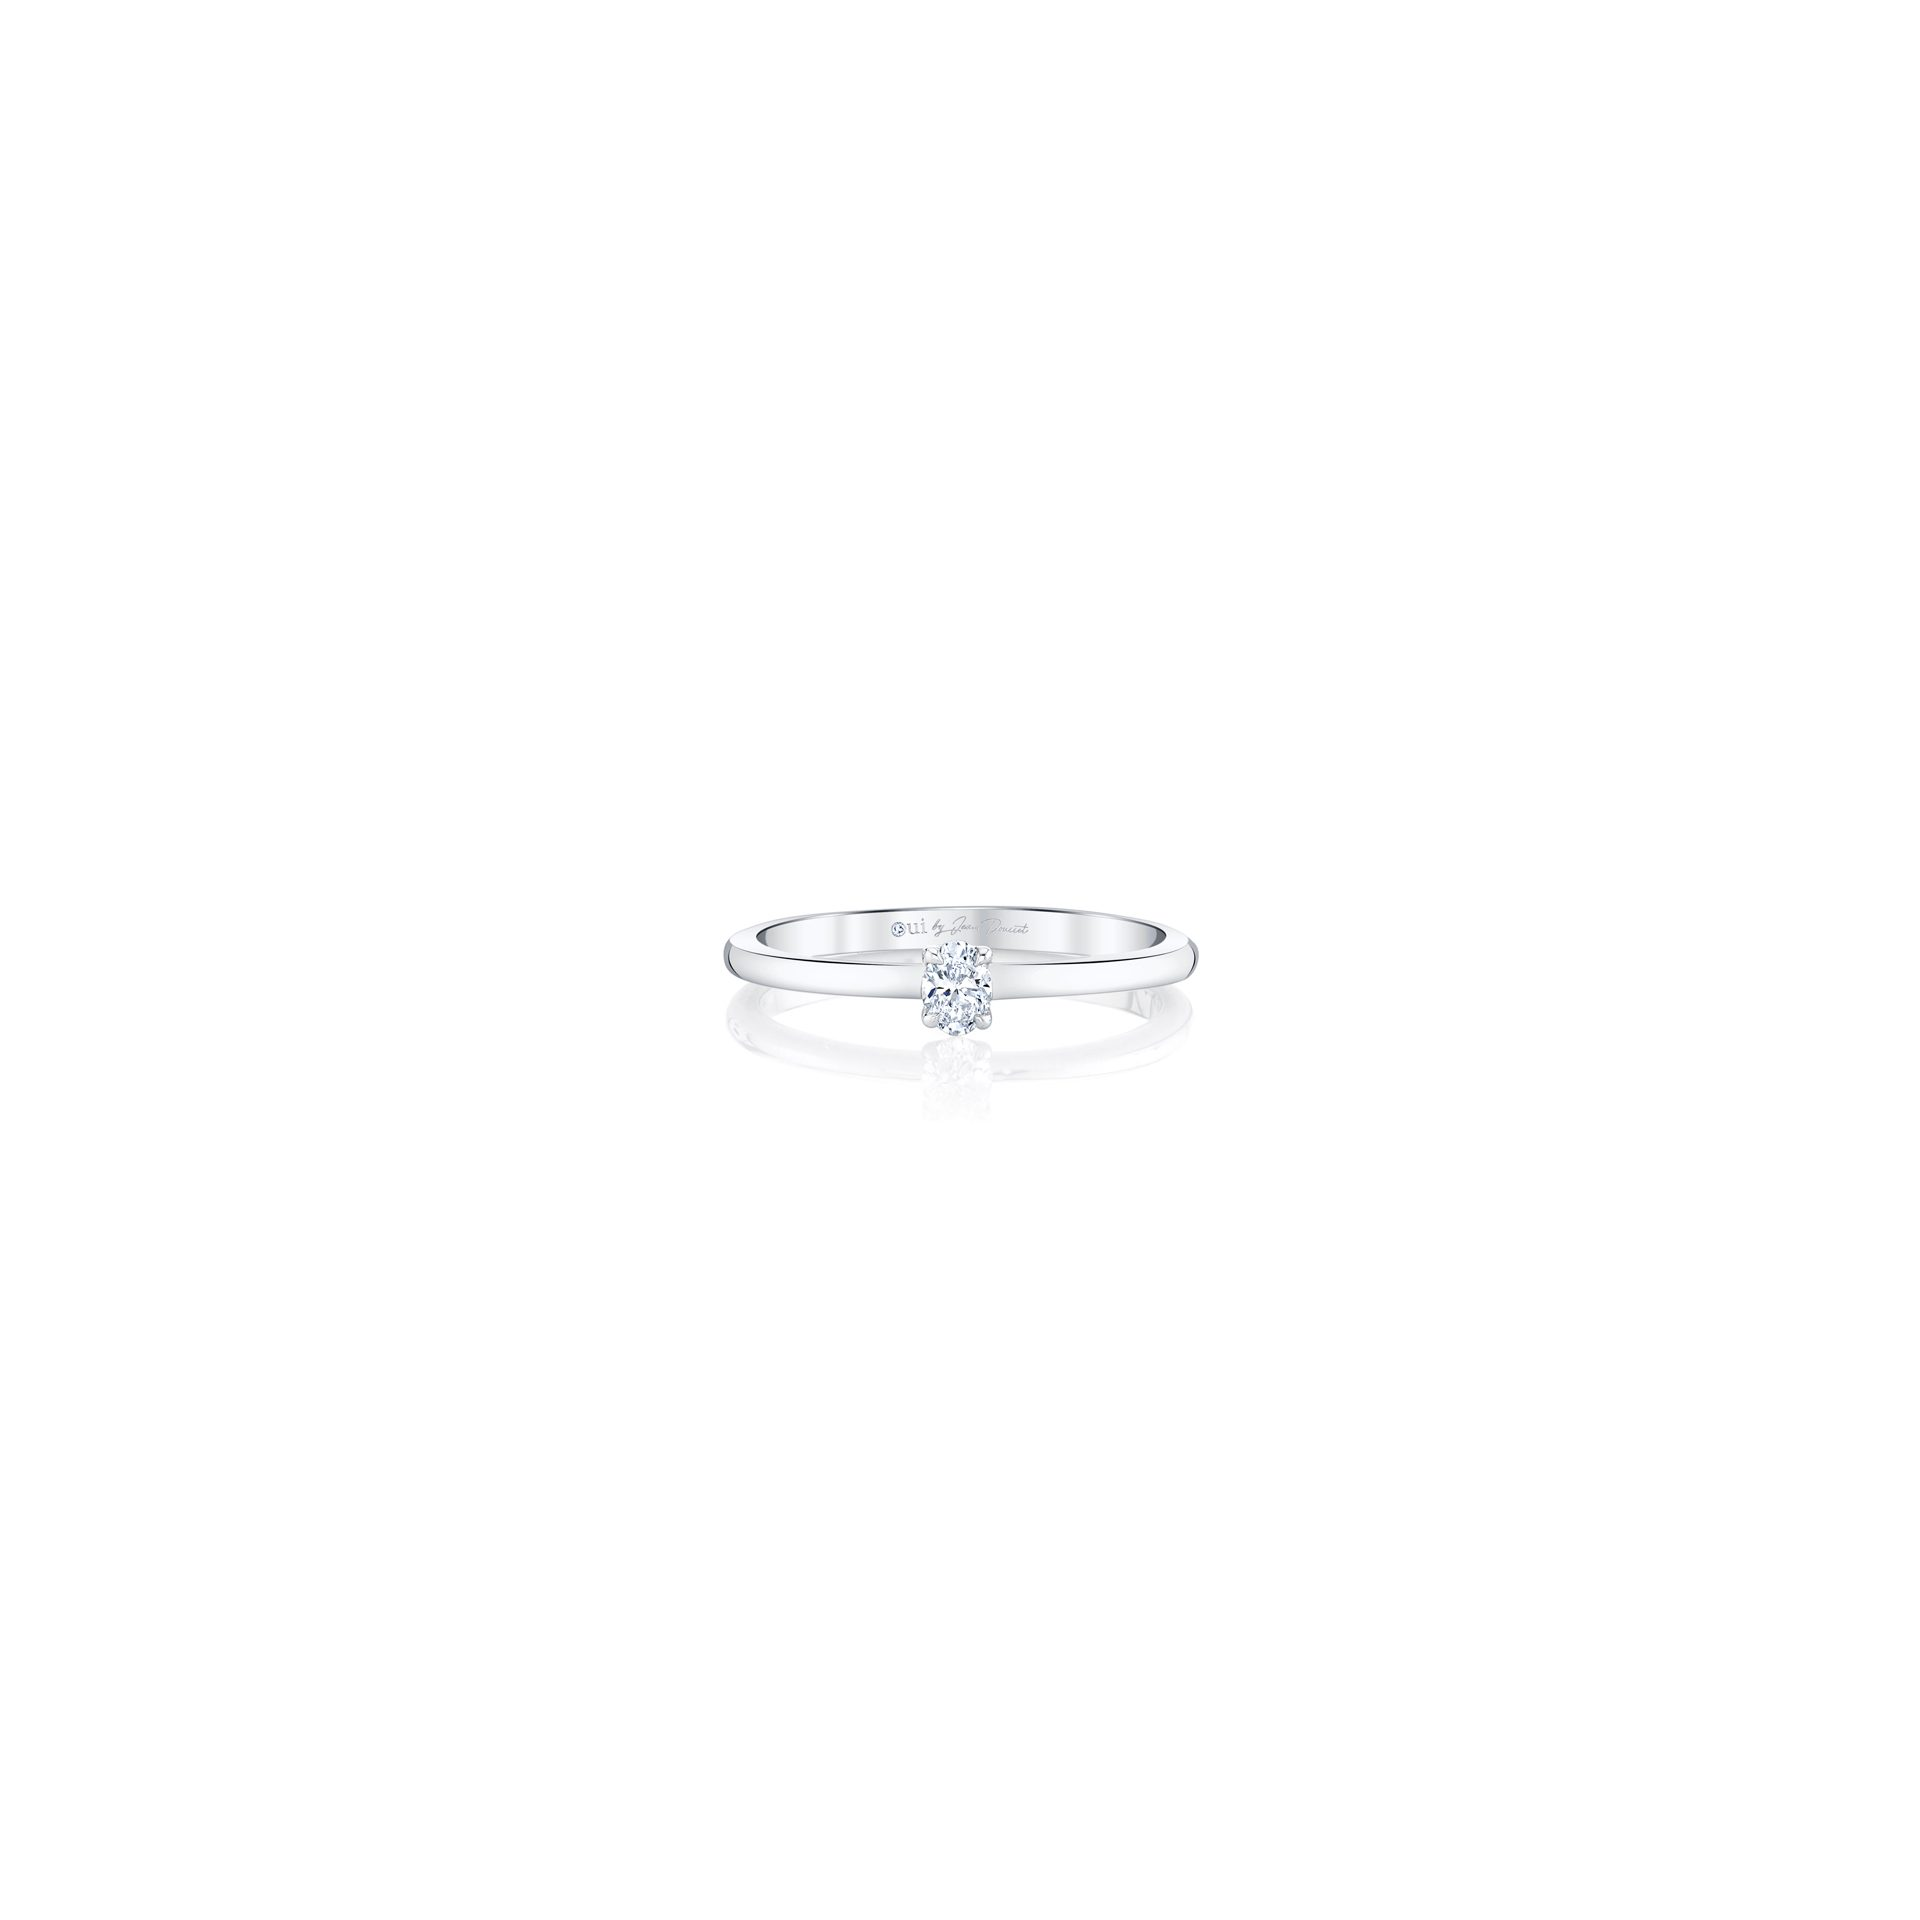 La Petite Oval Diamond Wedding Band in 18k White Gold Front View by Oui by Jean Dousset